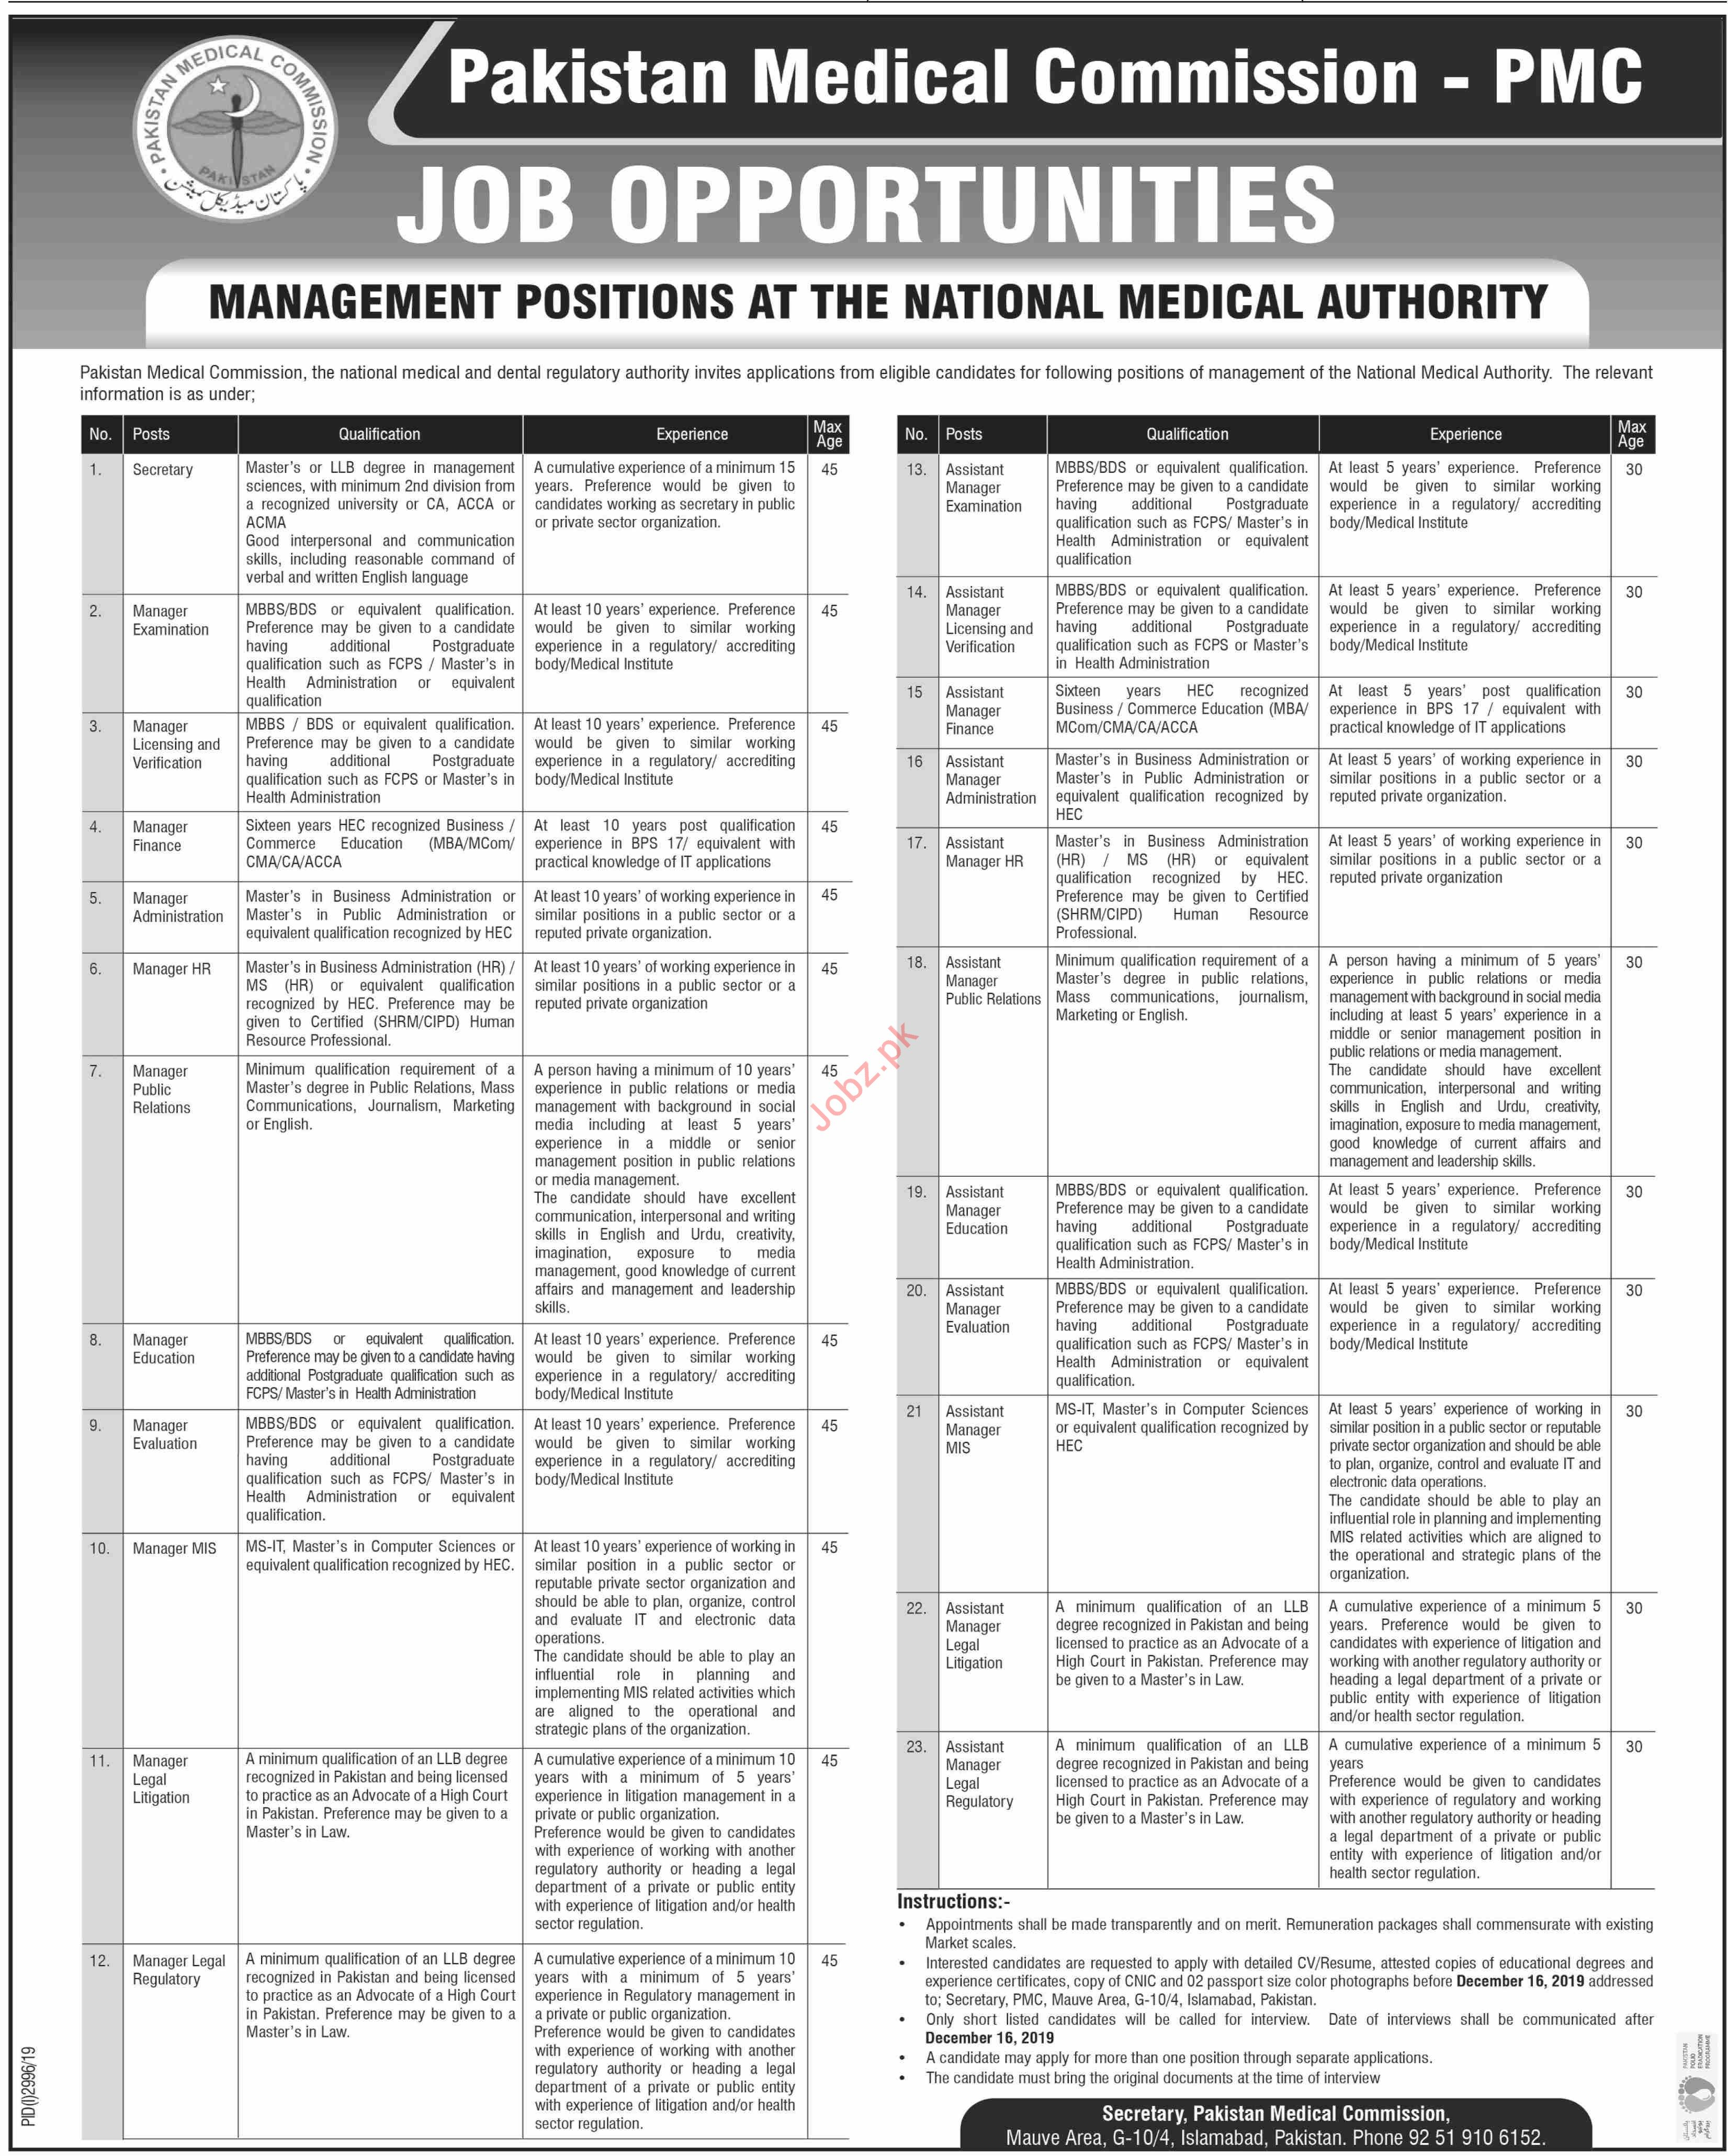 PMC Pakistan Medical Commission Jobs for Management Staff